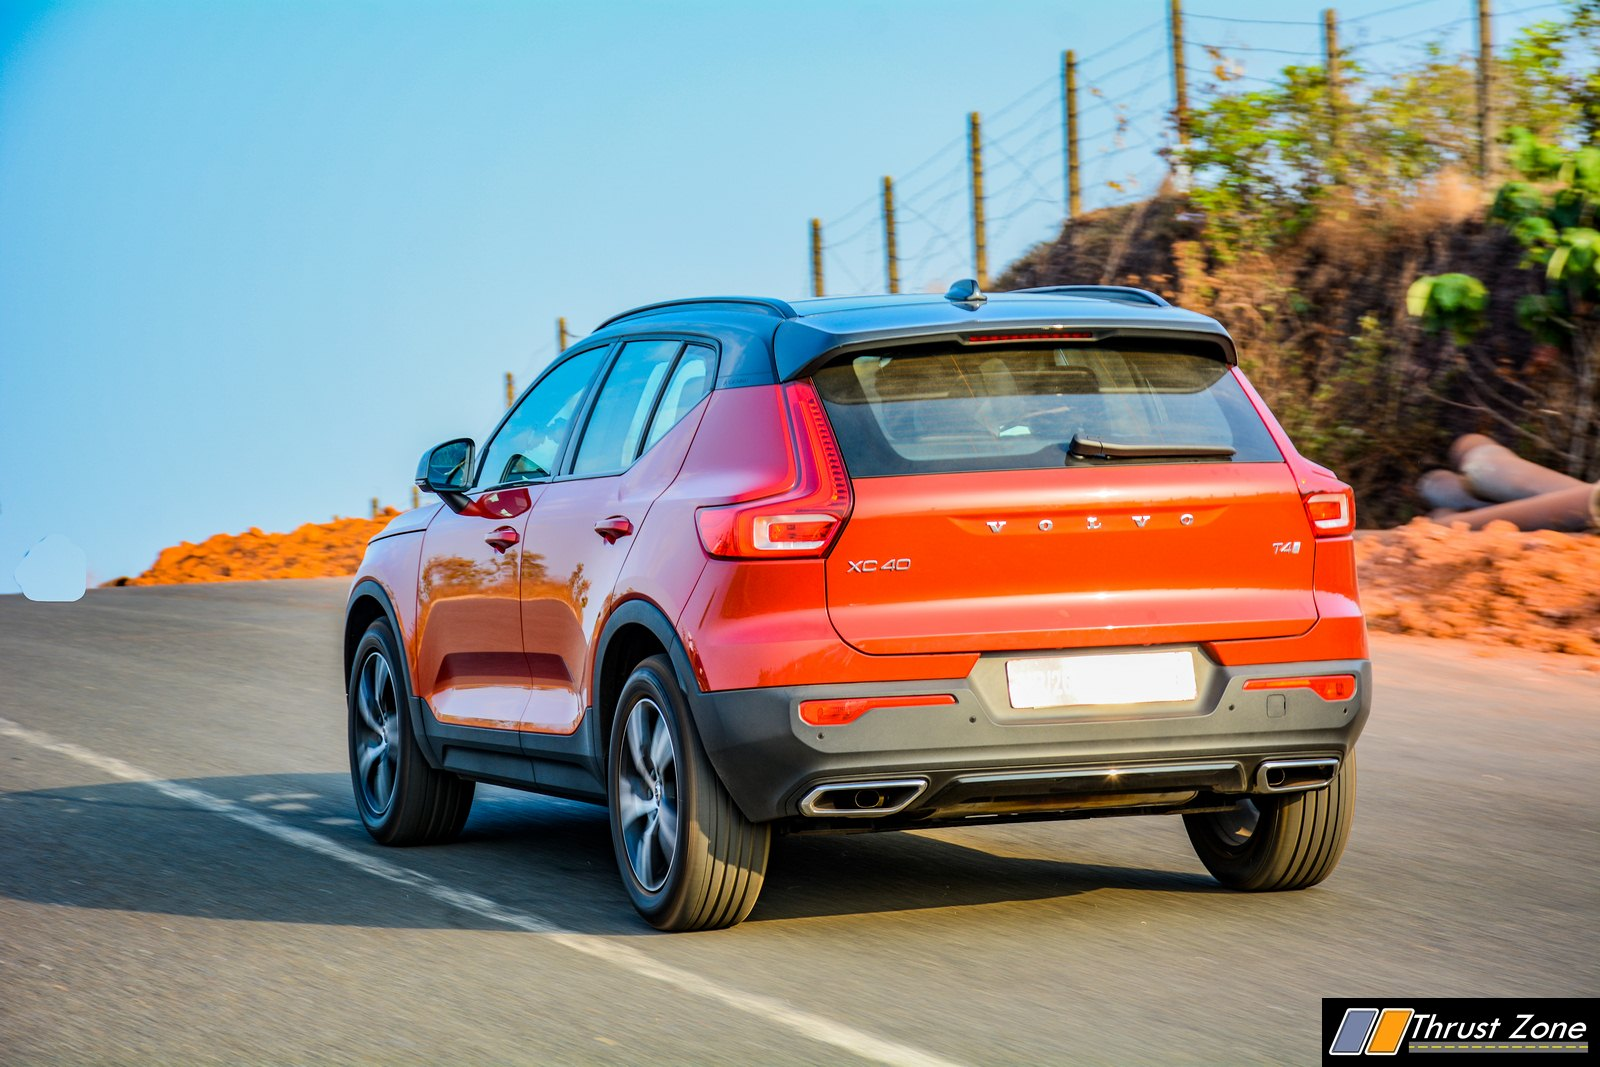 2020-volvo-xc40-petrol-india-review-18